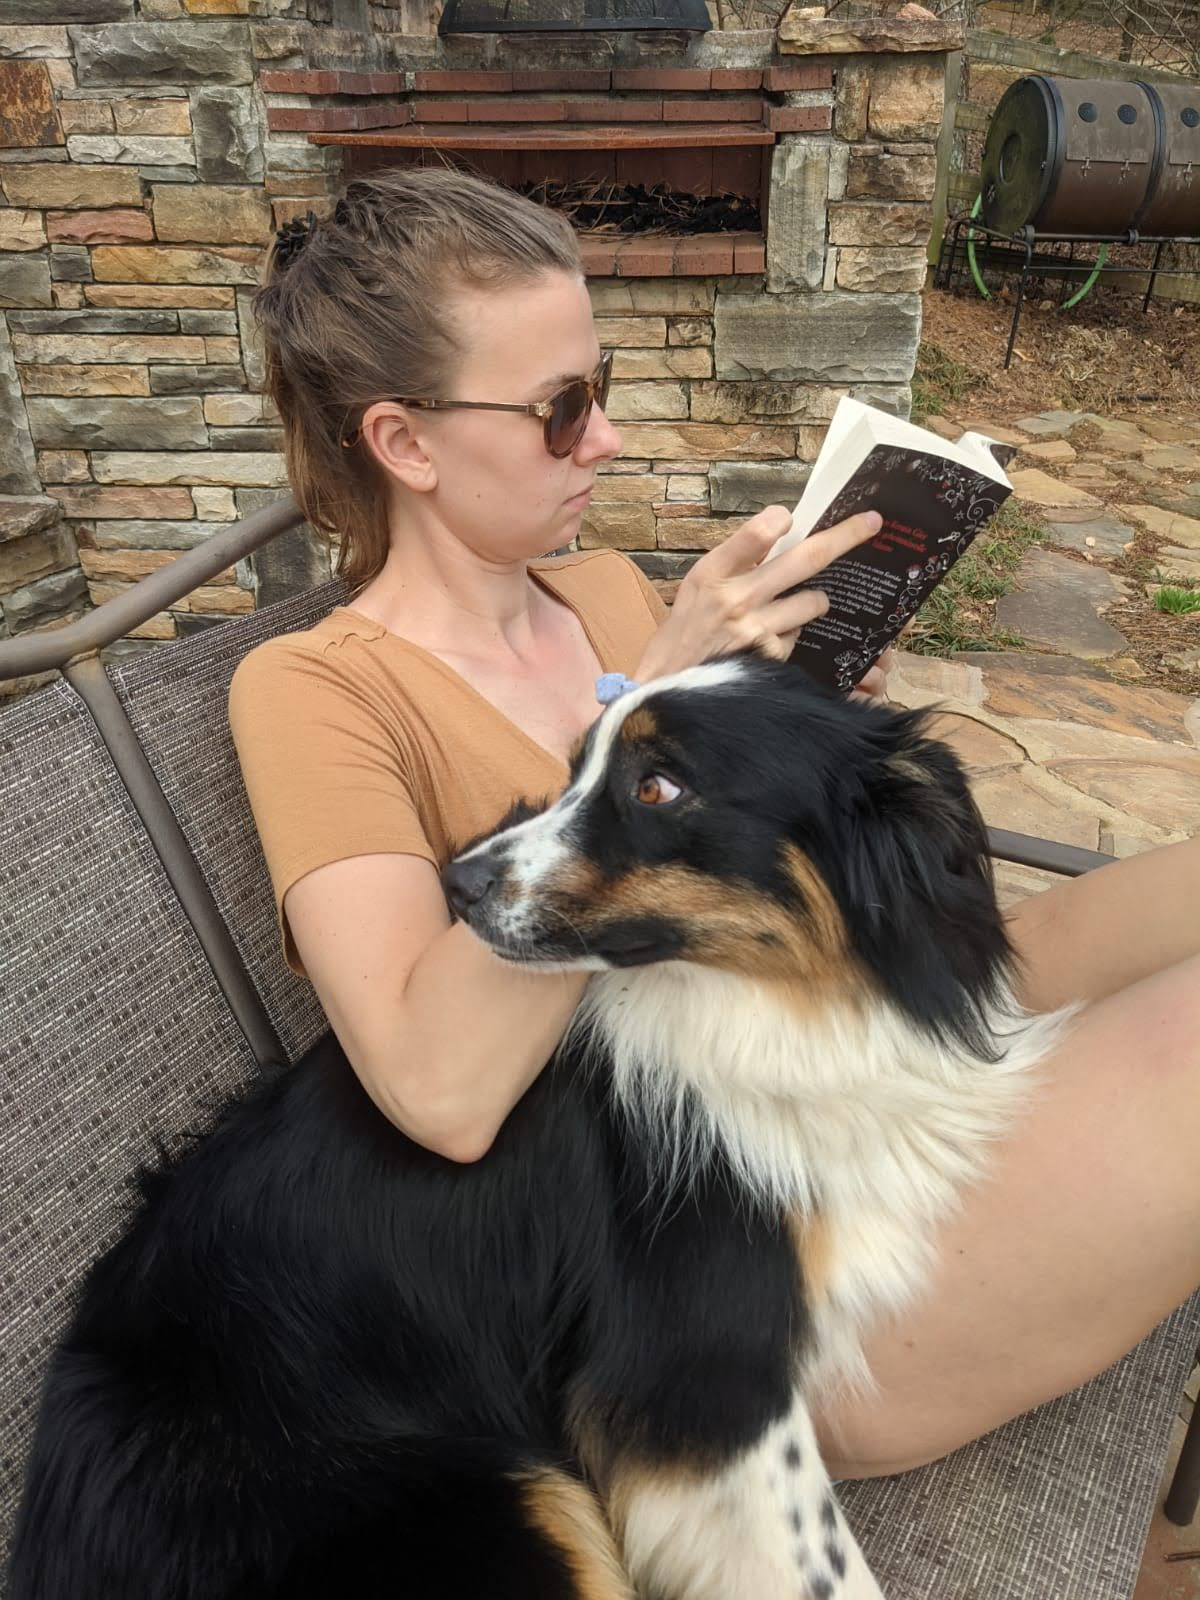 Image of author sitting outside on a bench reading with a dog at her side.